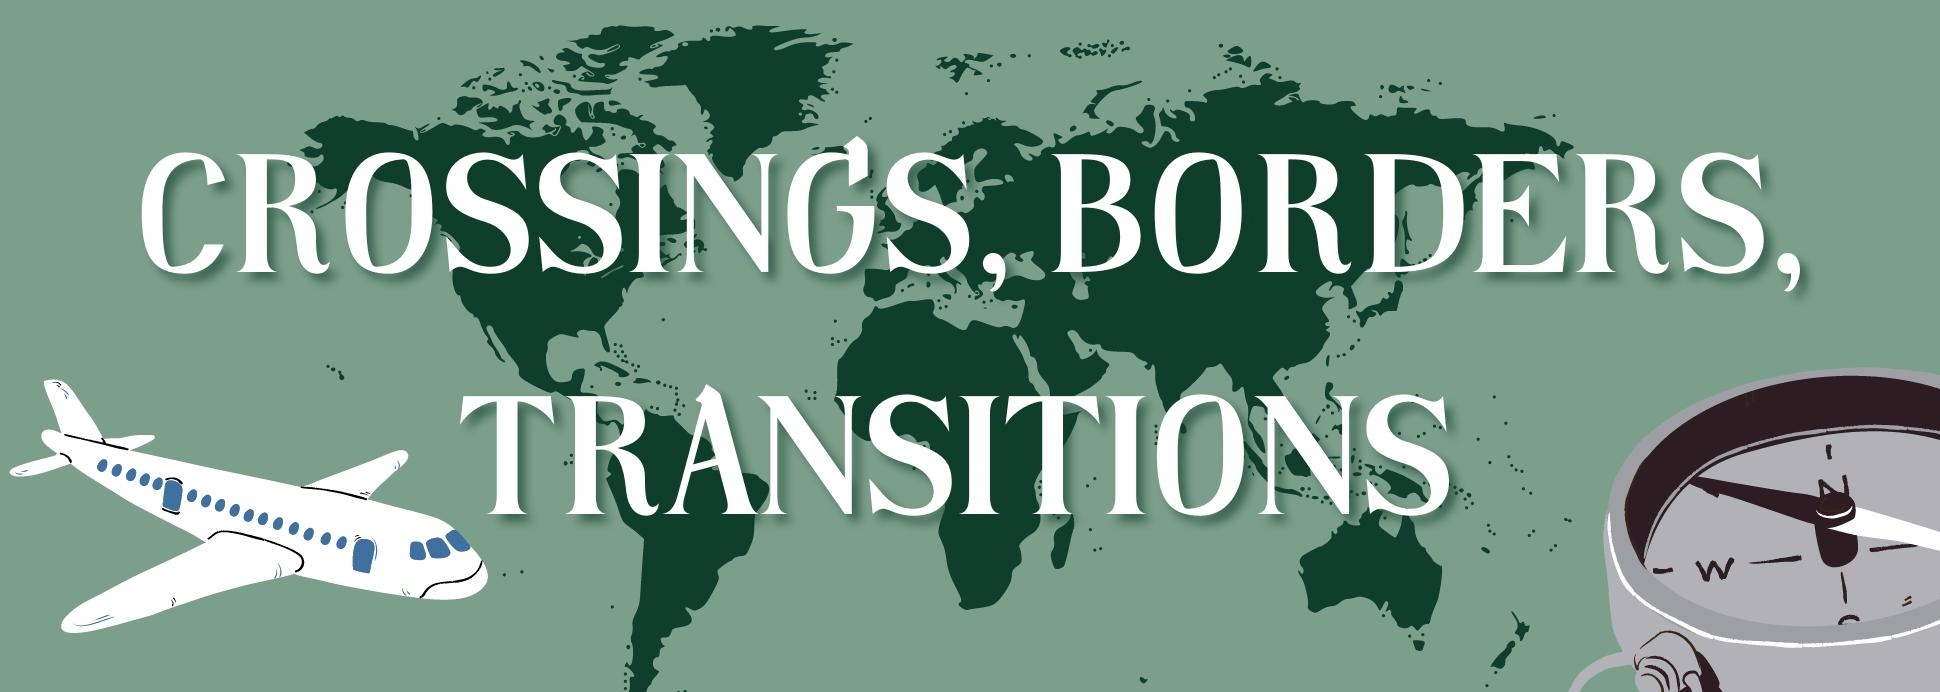 Crossings, Borders, and Transitions